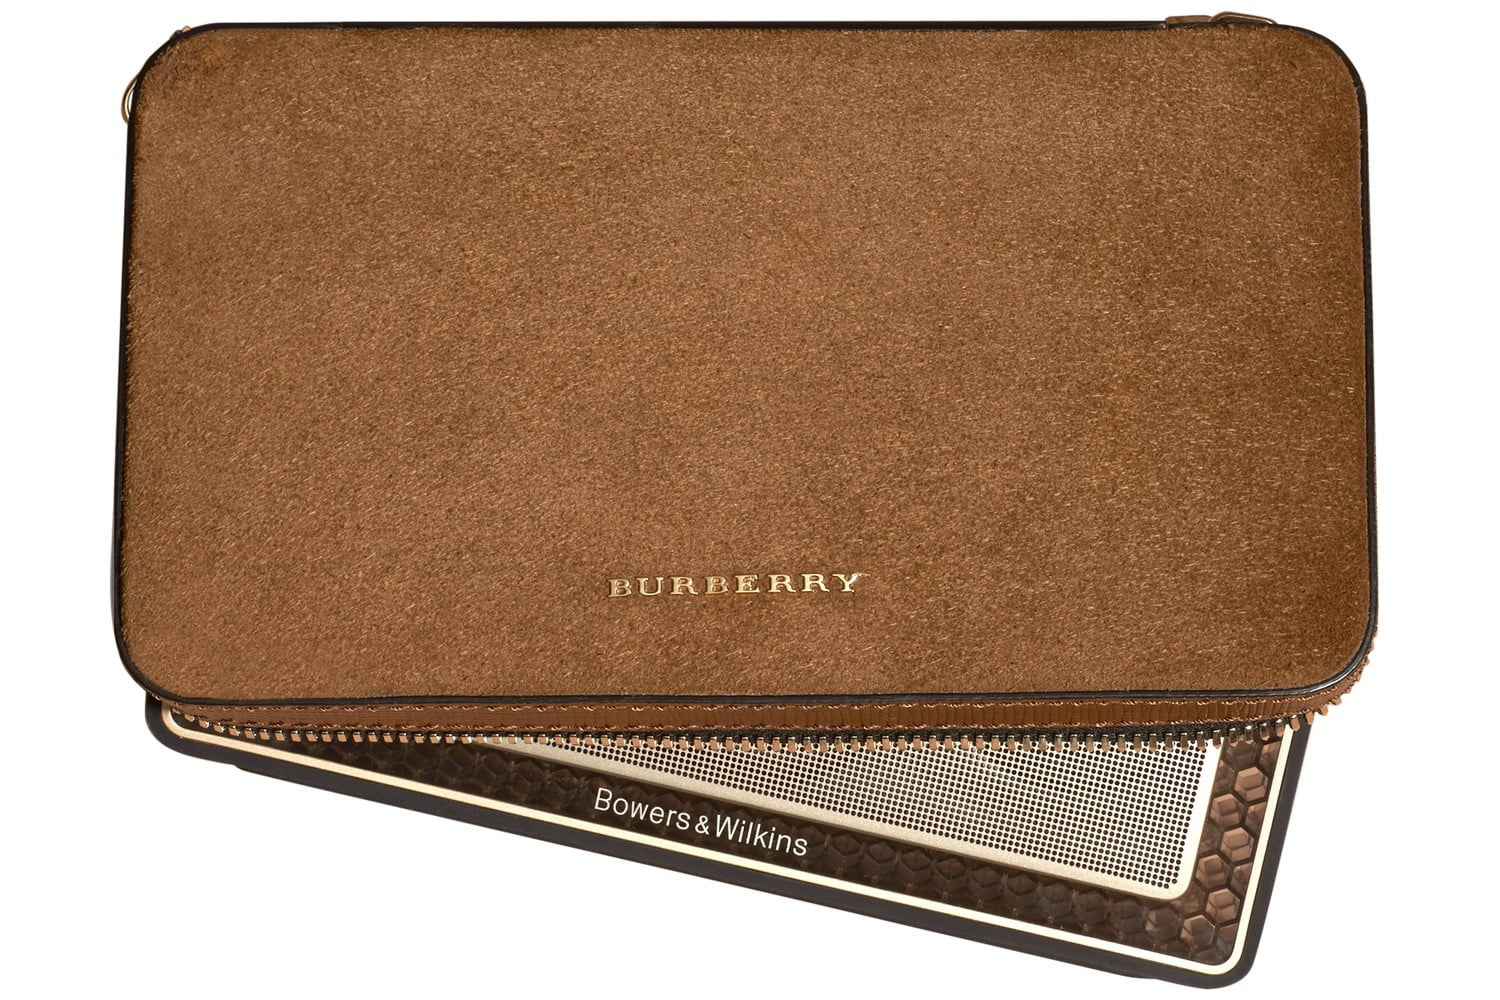 bowers wilkins burberry t7 bluetooth speaker and gold edition 10